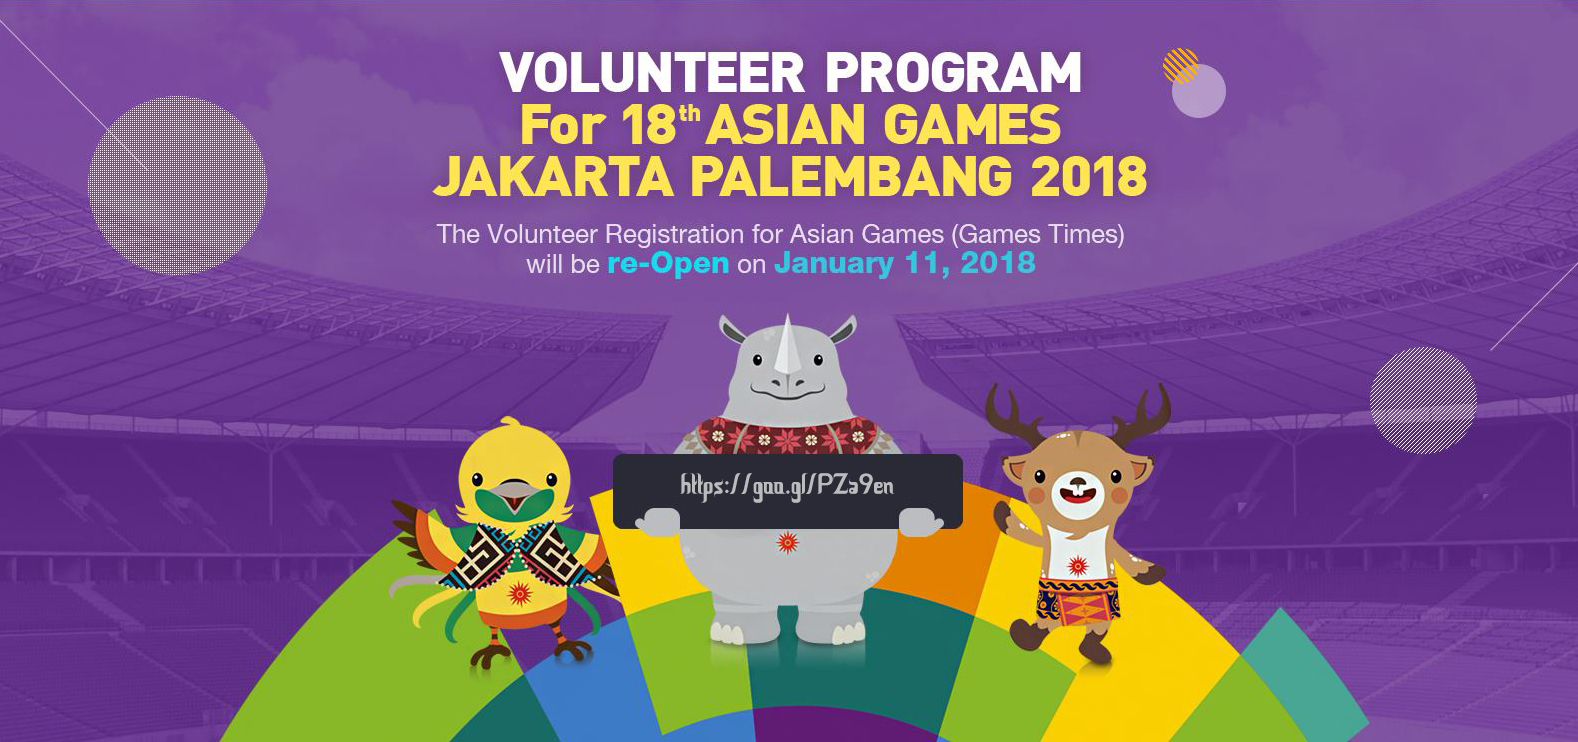 volunteer-program-for-18th-asian-games-will-be-re-open